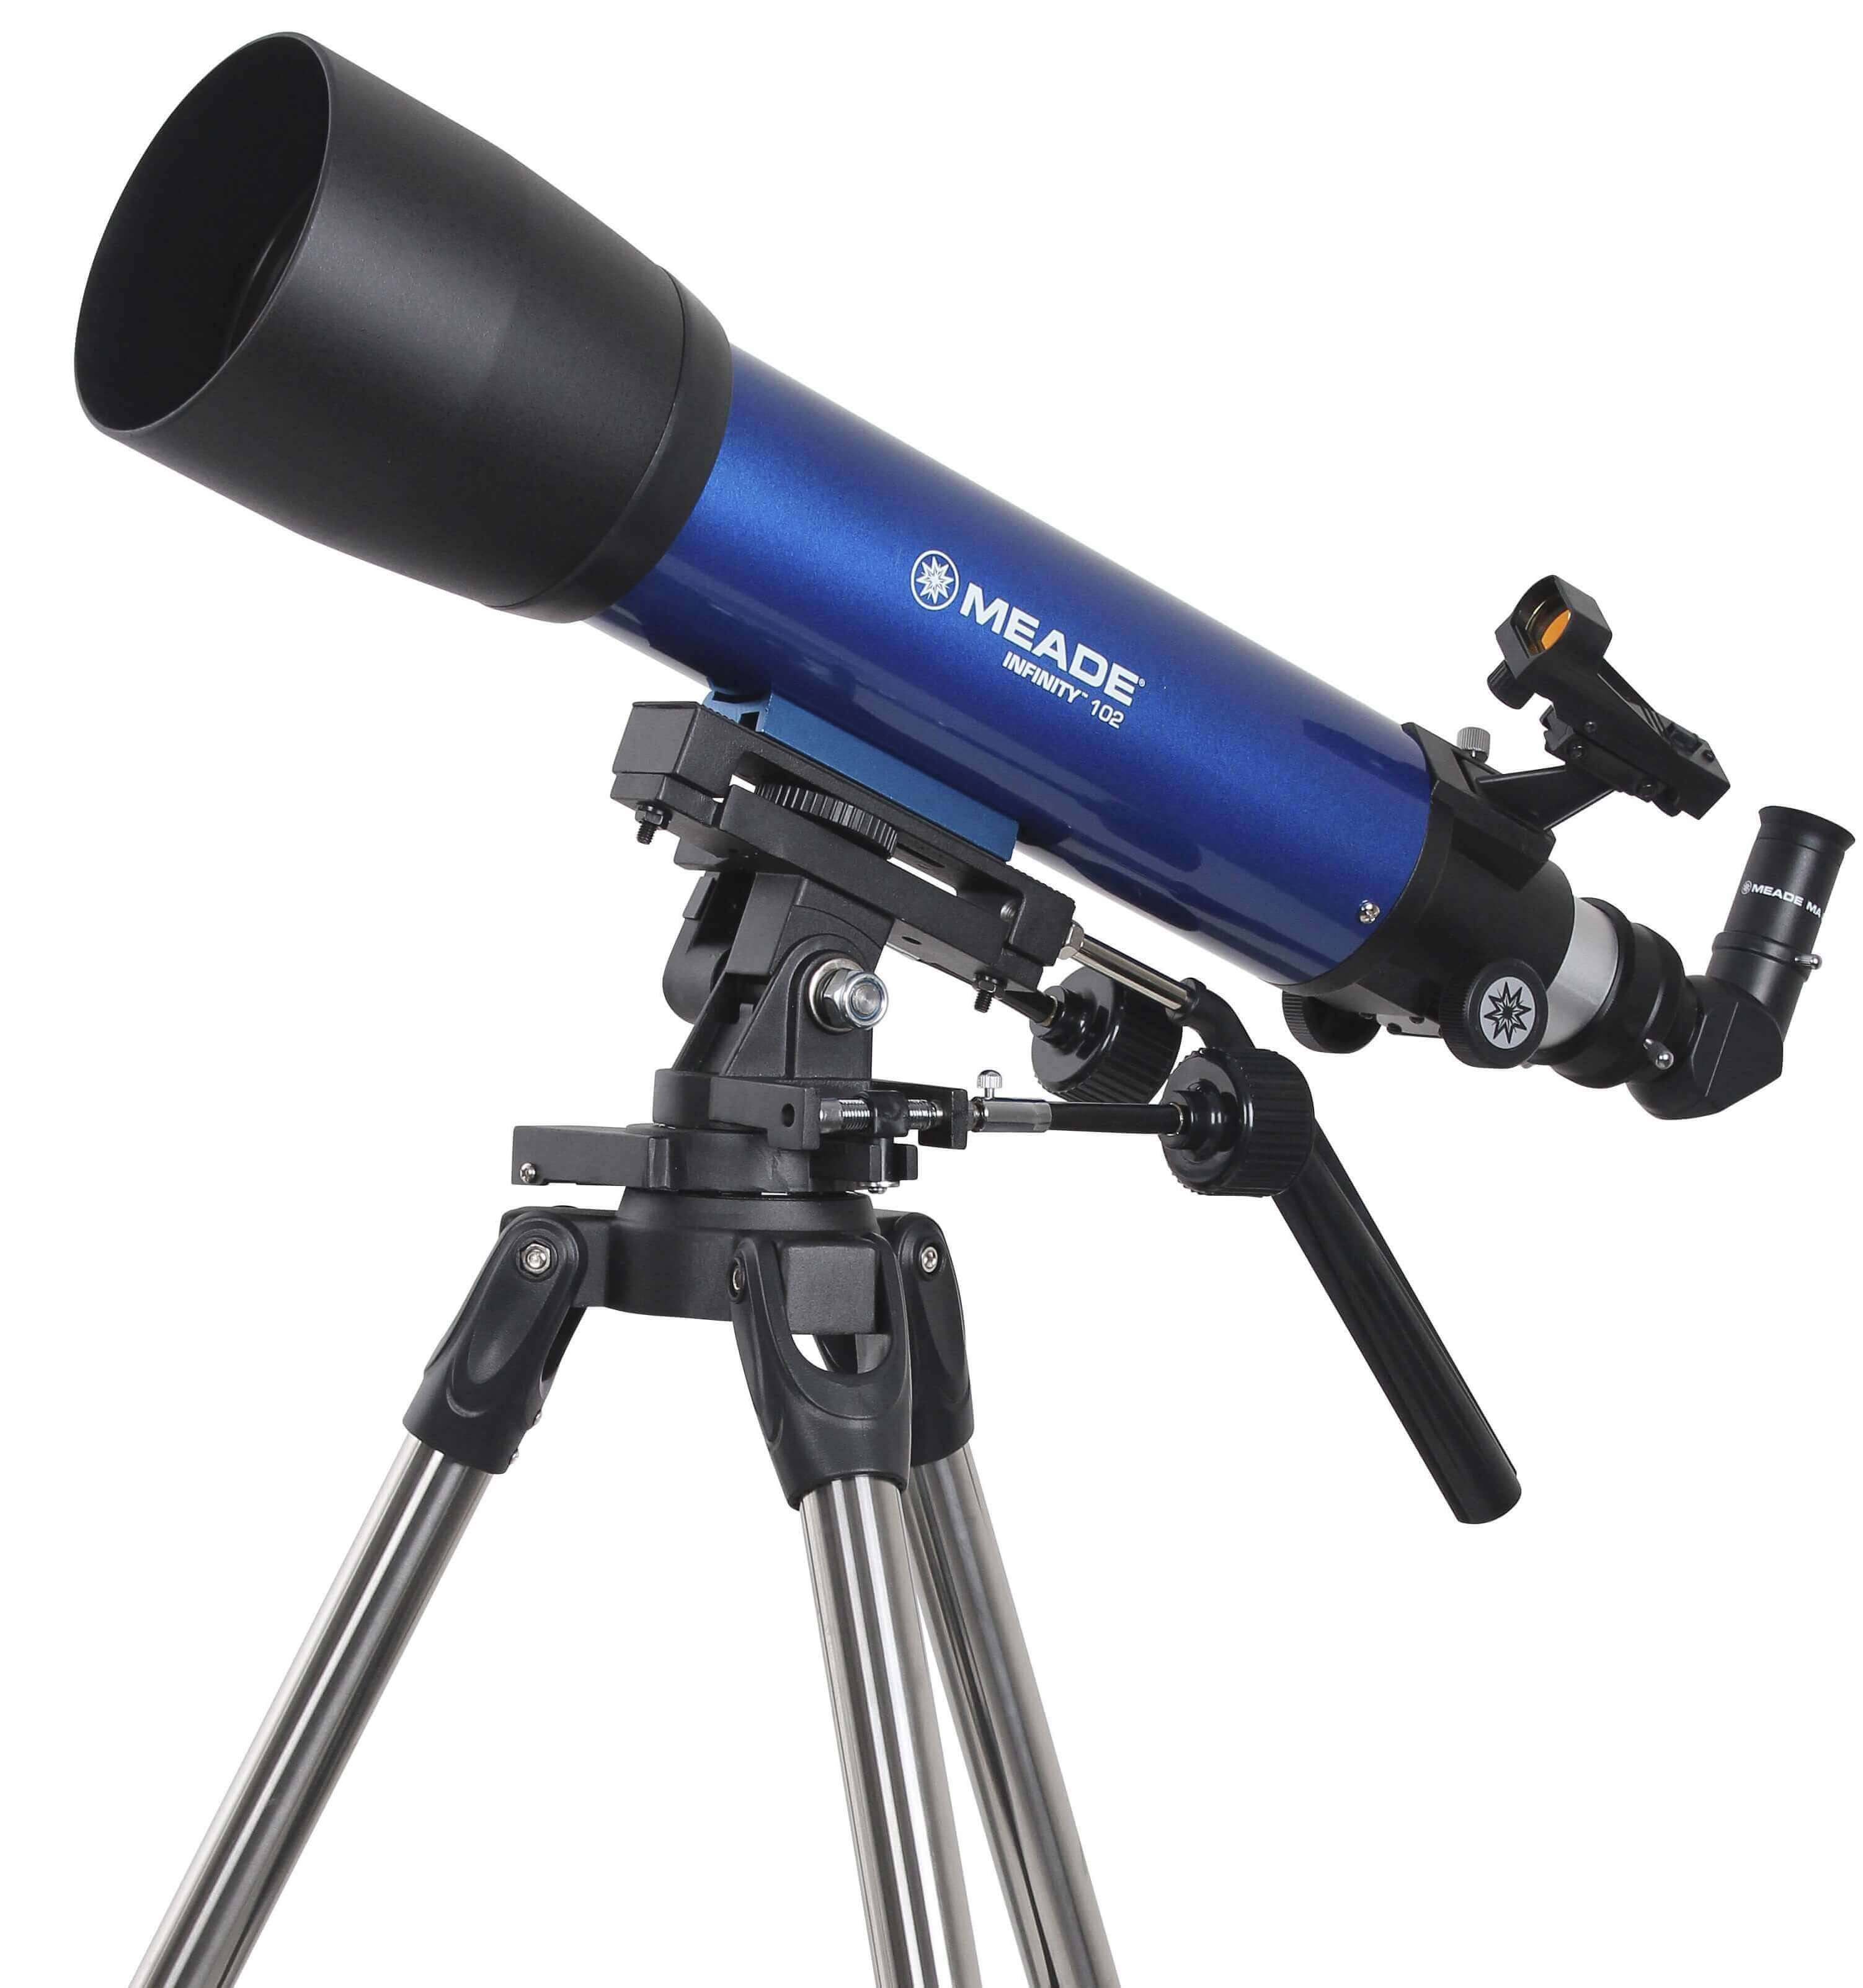 Meade Telescope Infinity 102mm Altazimuth Refractor Buy